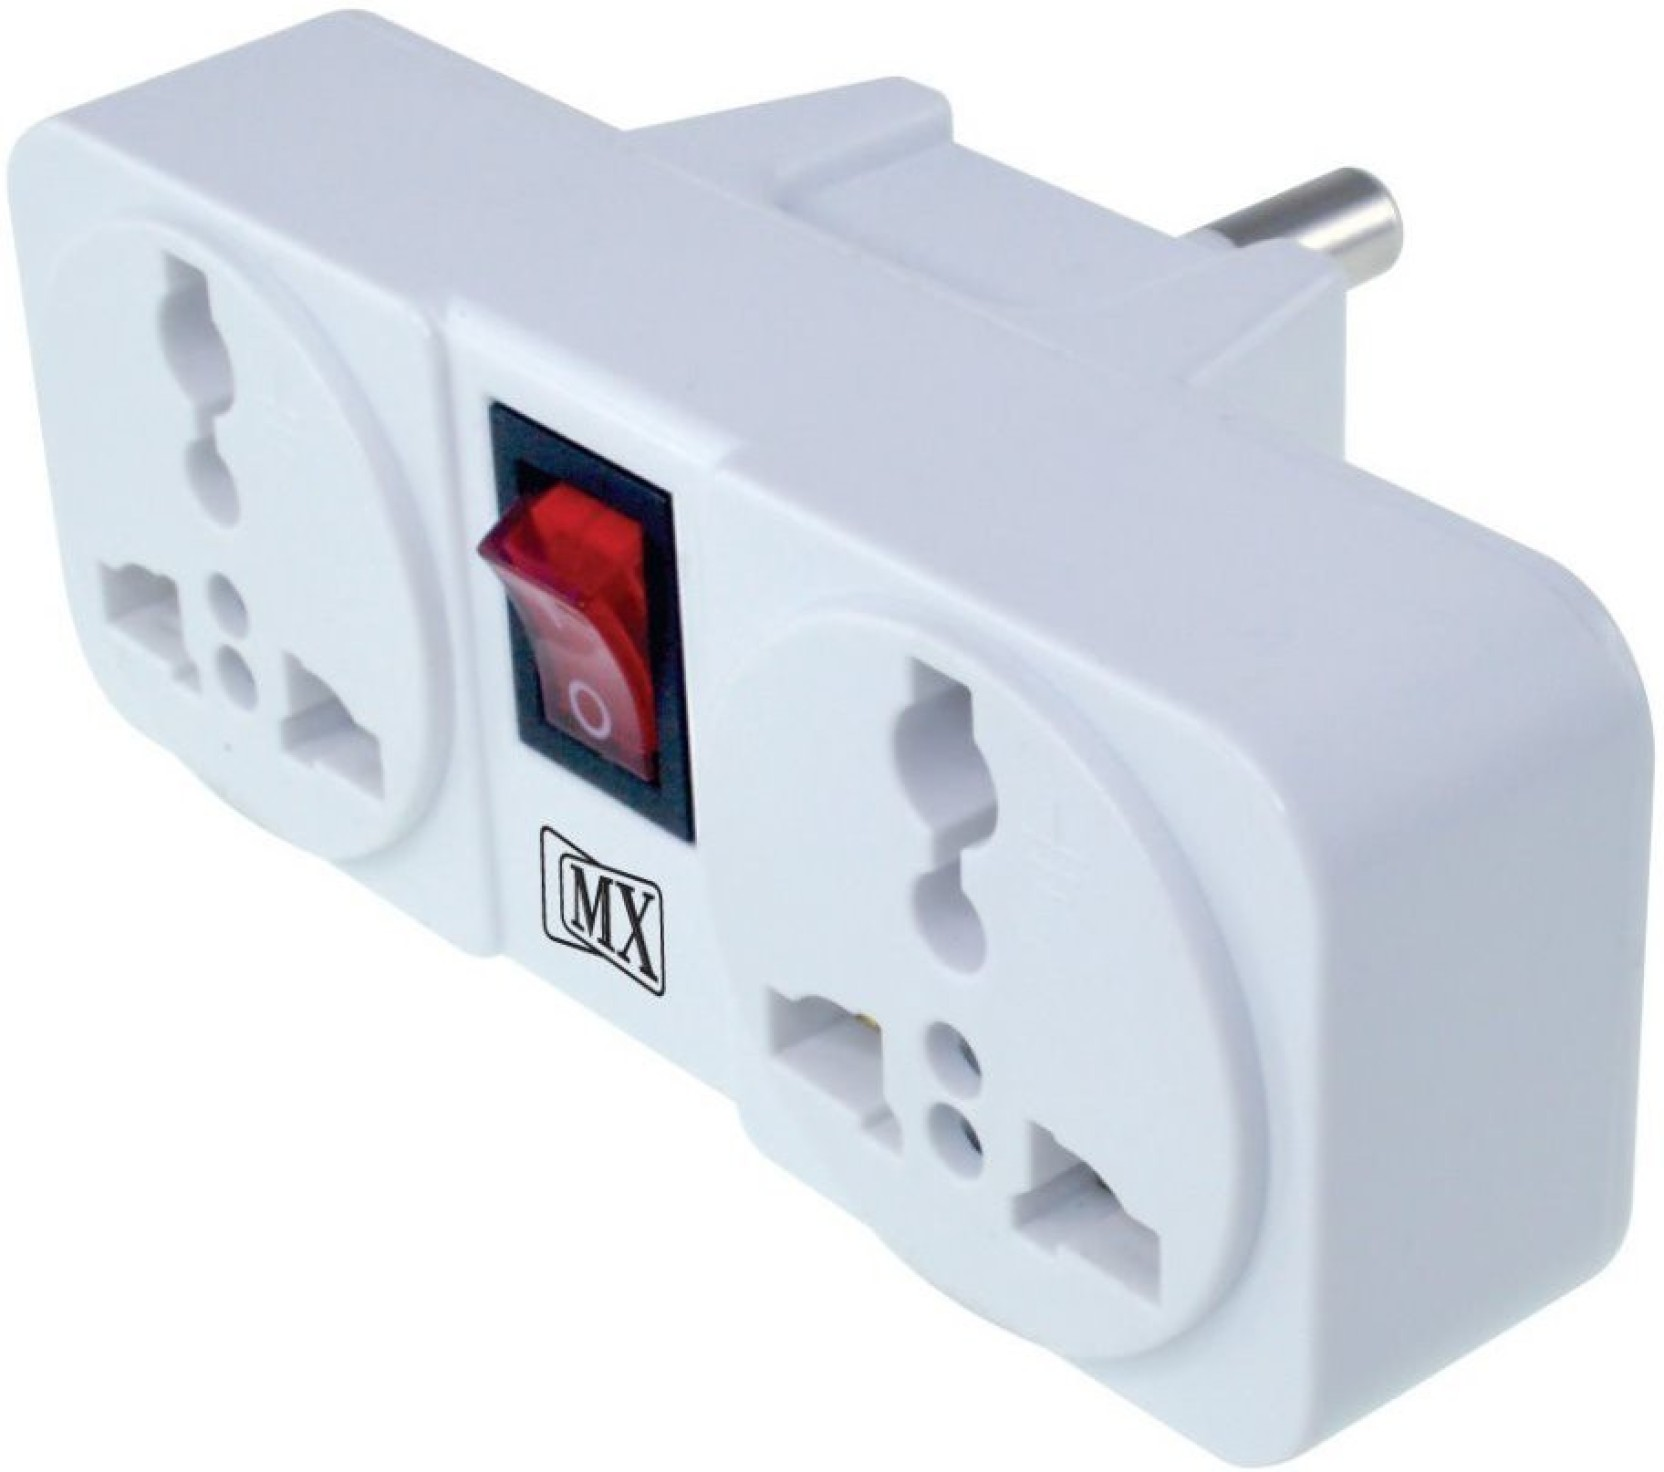 Maxcart 3 Pin 2 Way Universal Socket With Led Switch Pack Of Adapter Add To Cart